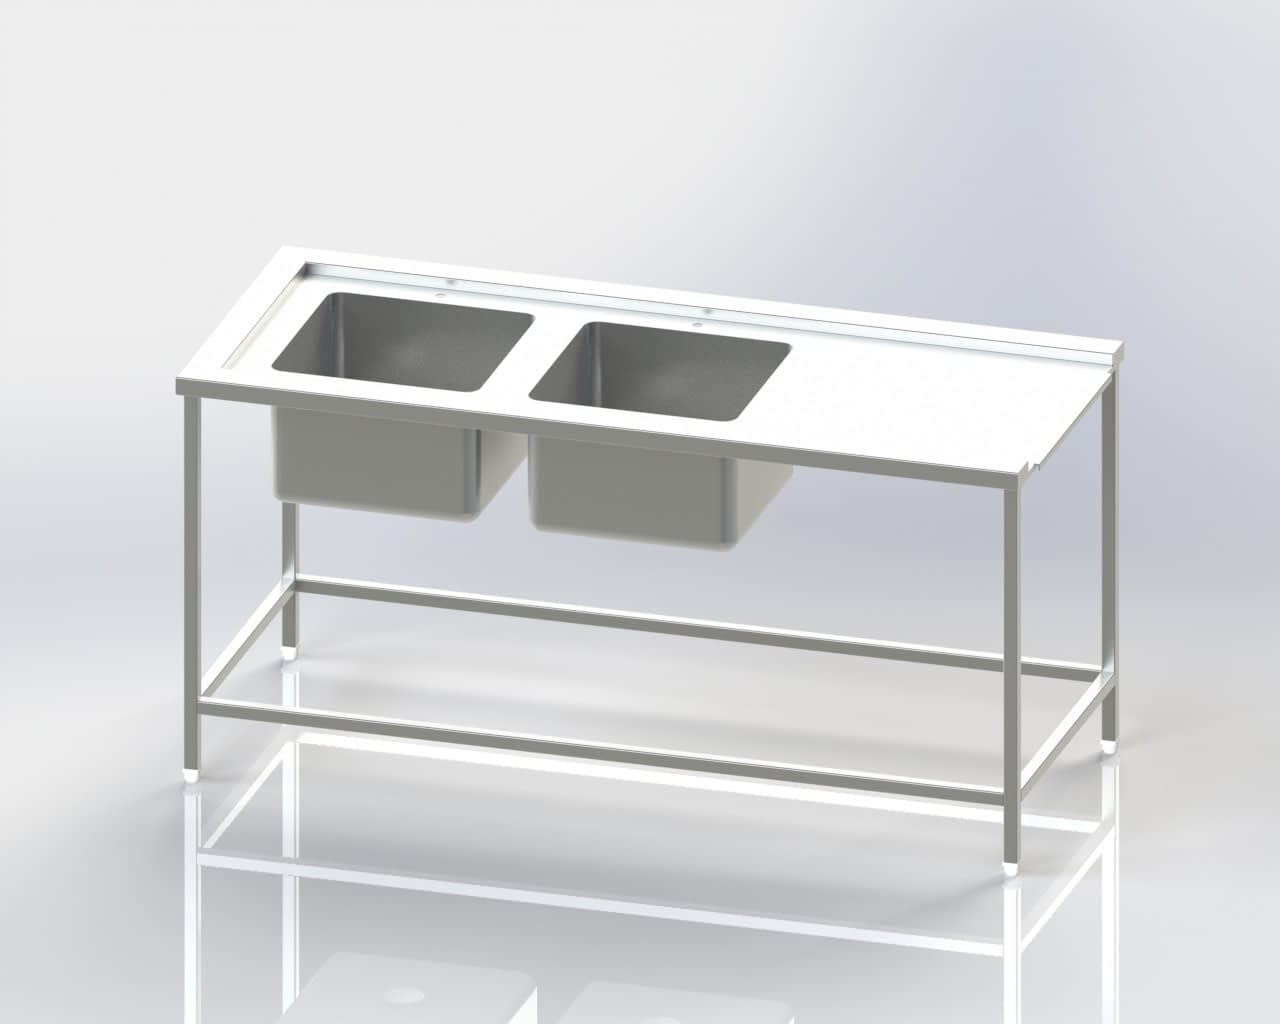 Two Sink - Dishwasher Inlet Table